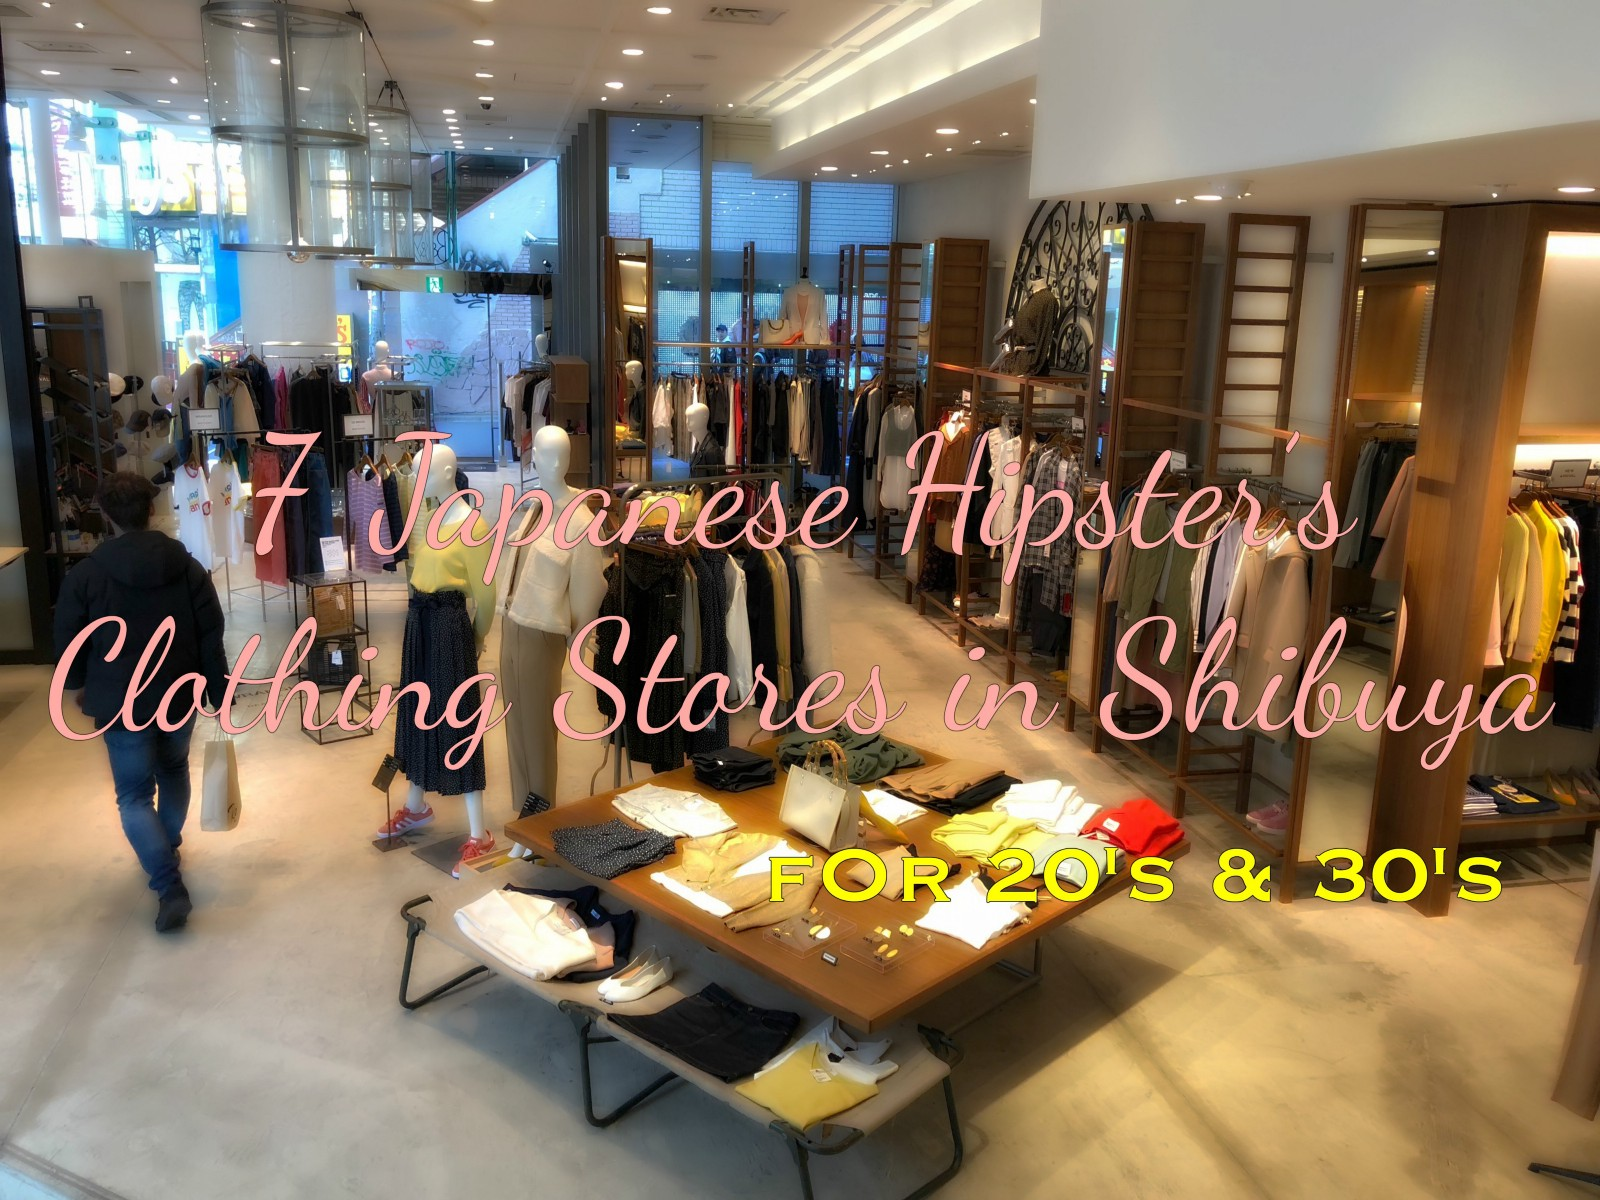 7 Japanese Hipster's Clothing Stores in Shibuya - Japan Web